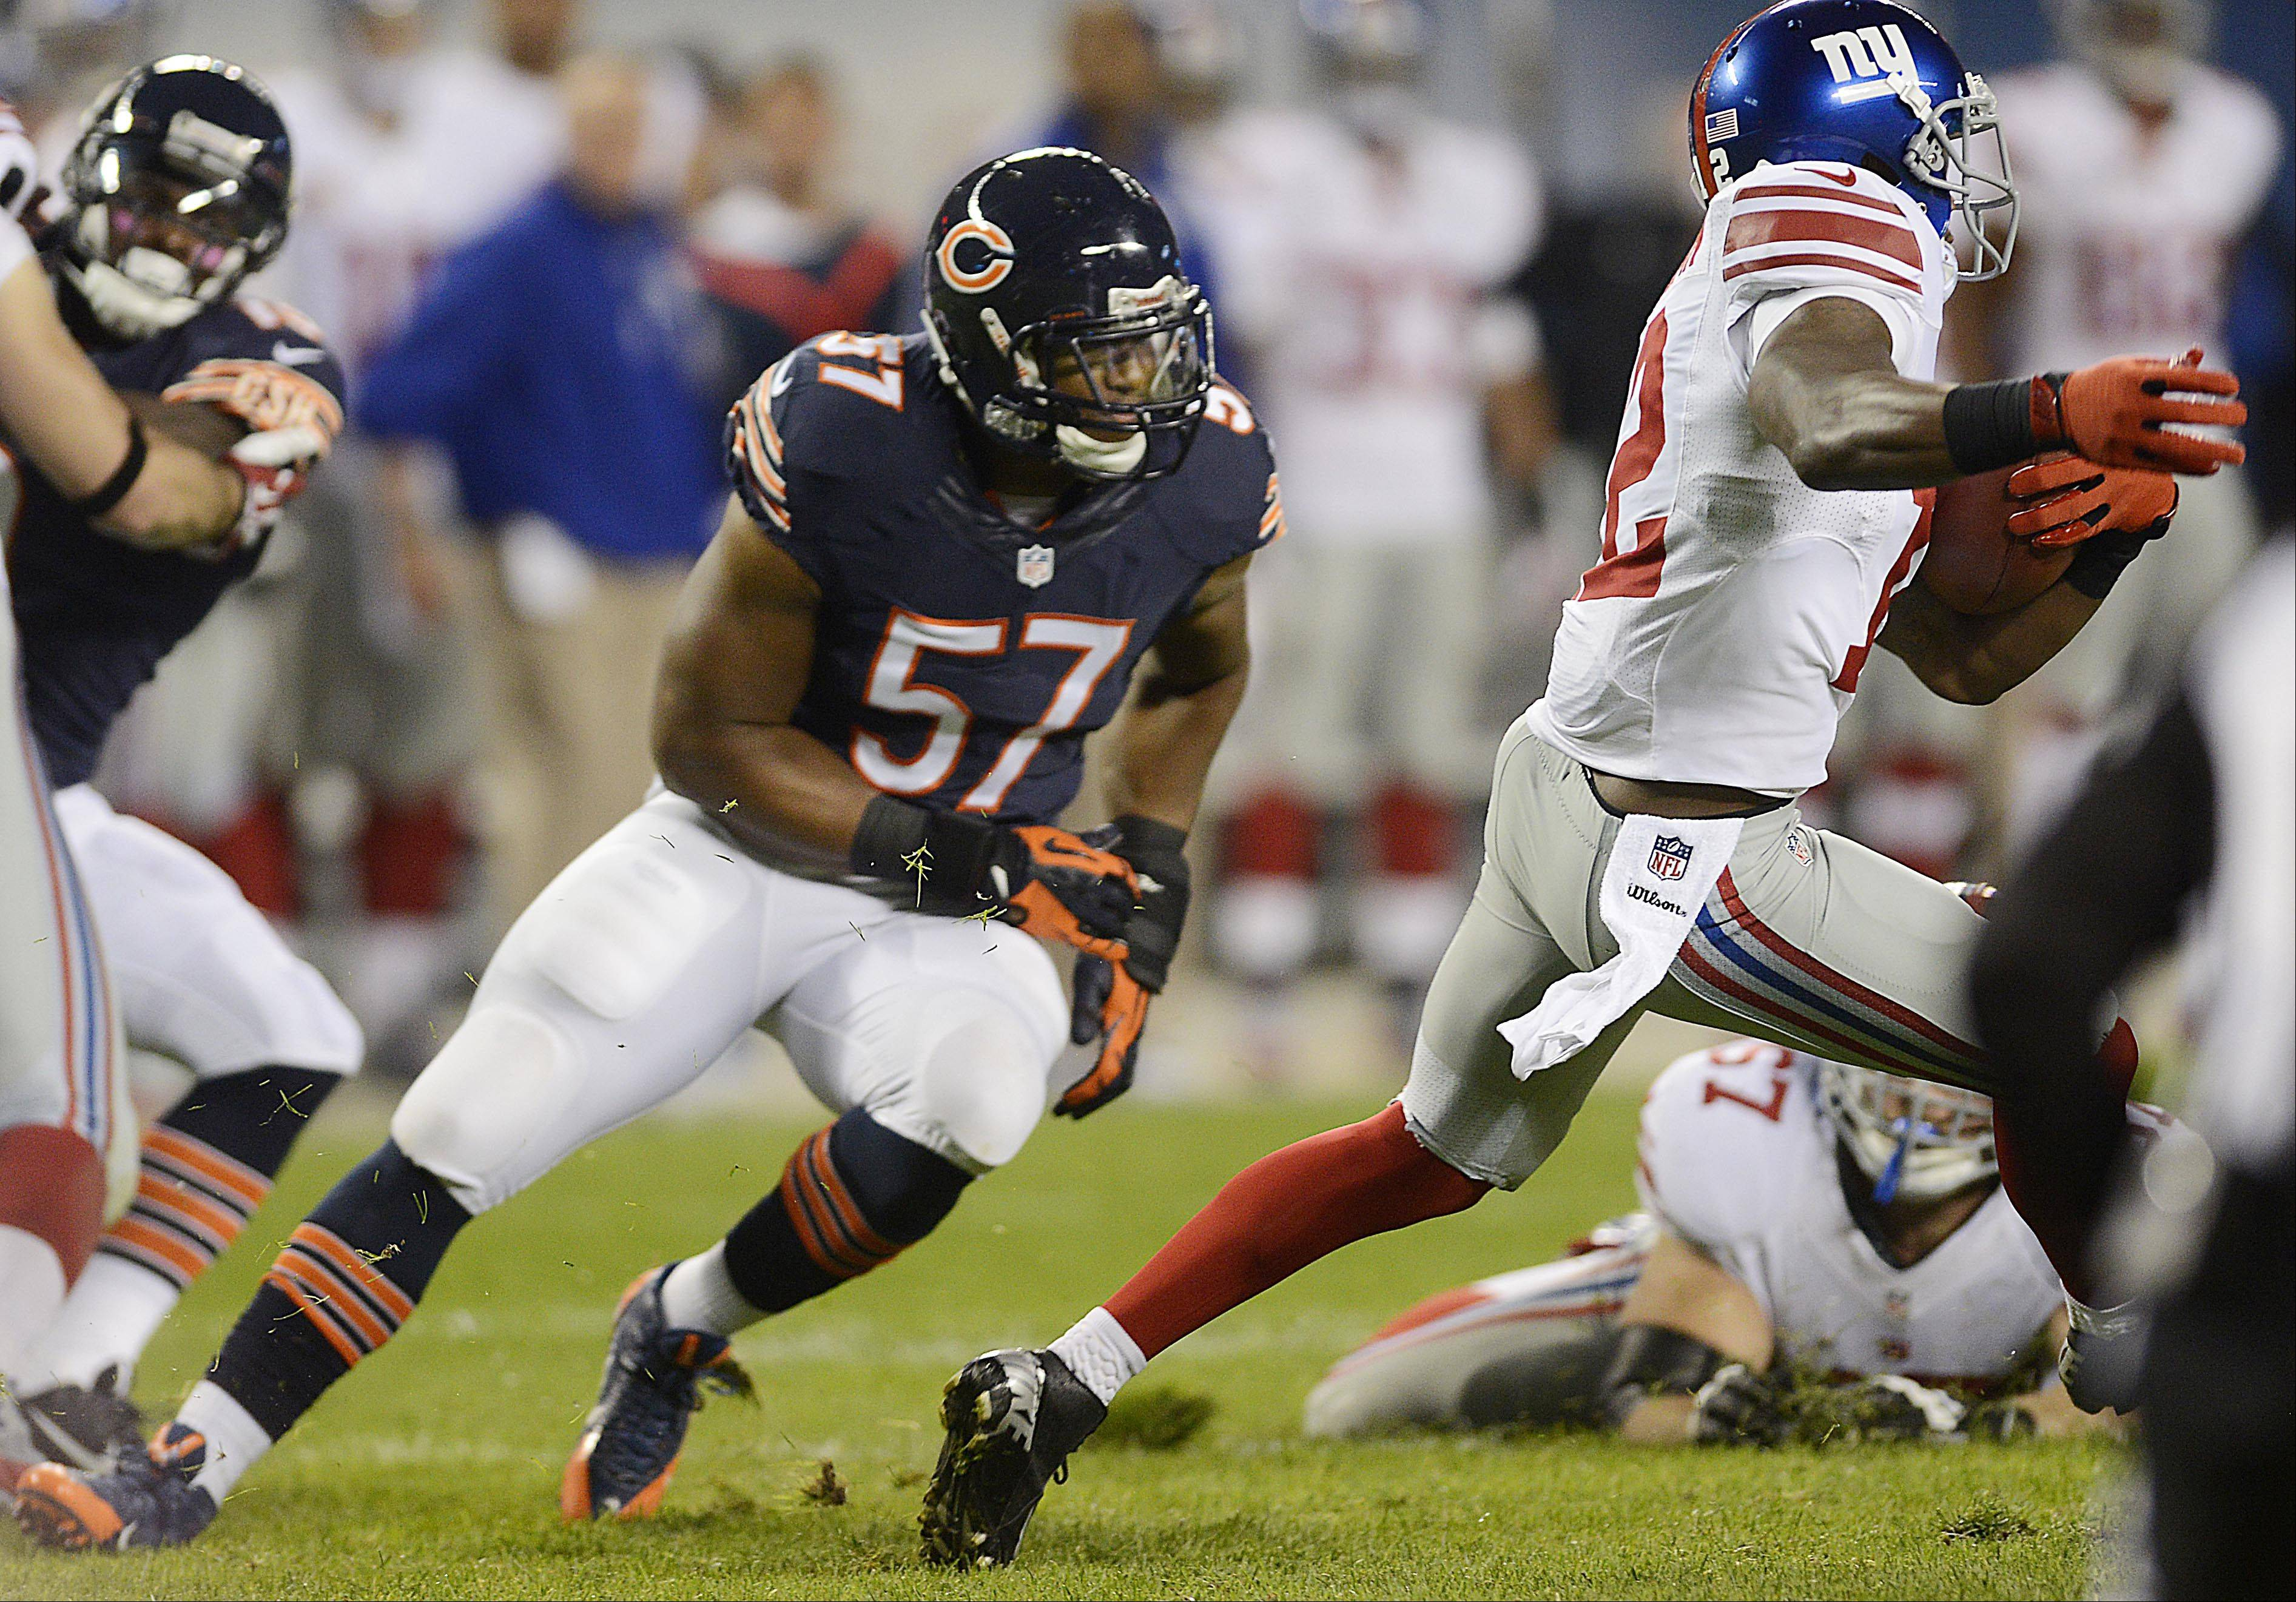 Bears inside linebacker Jon Bostic chases New York Giants wide receiver Jerrel Jernigan Thursday night at Soldier Field in Chicago.